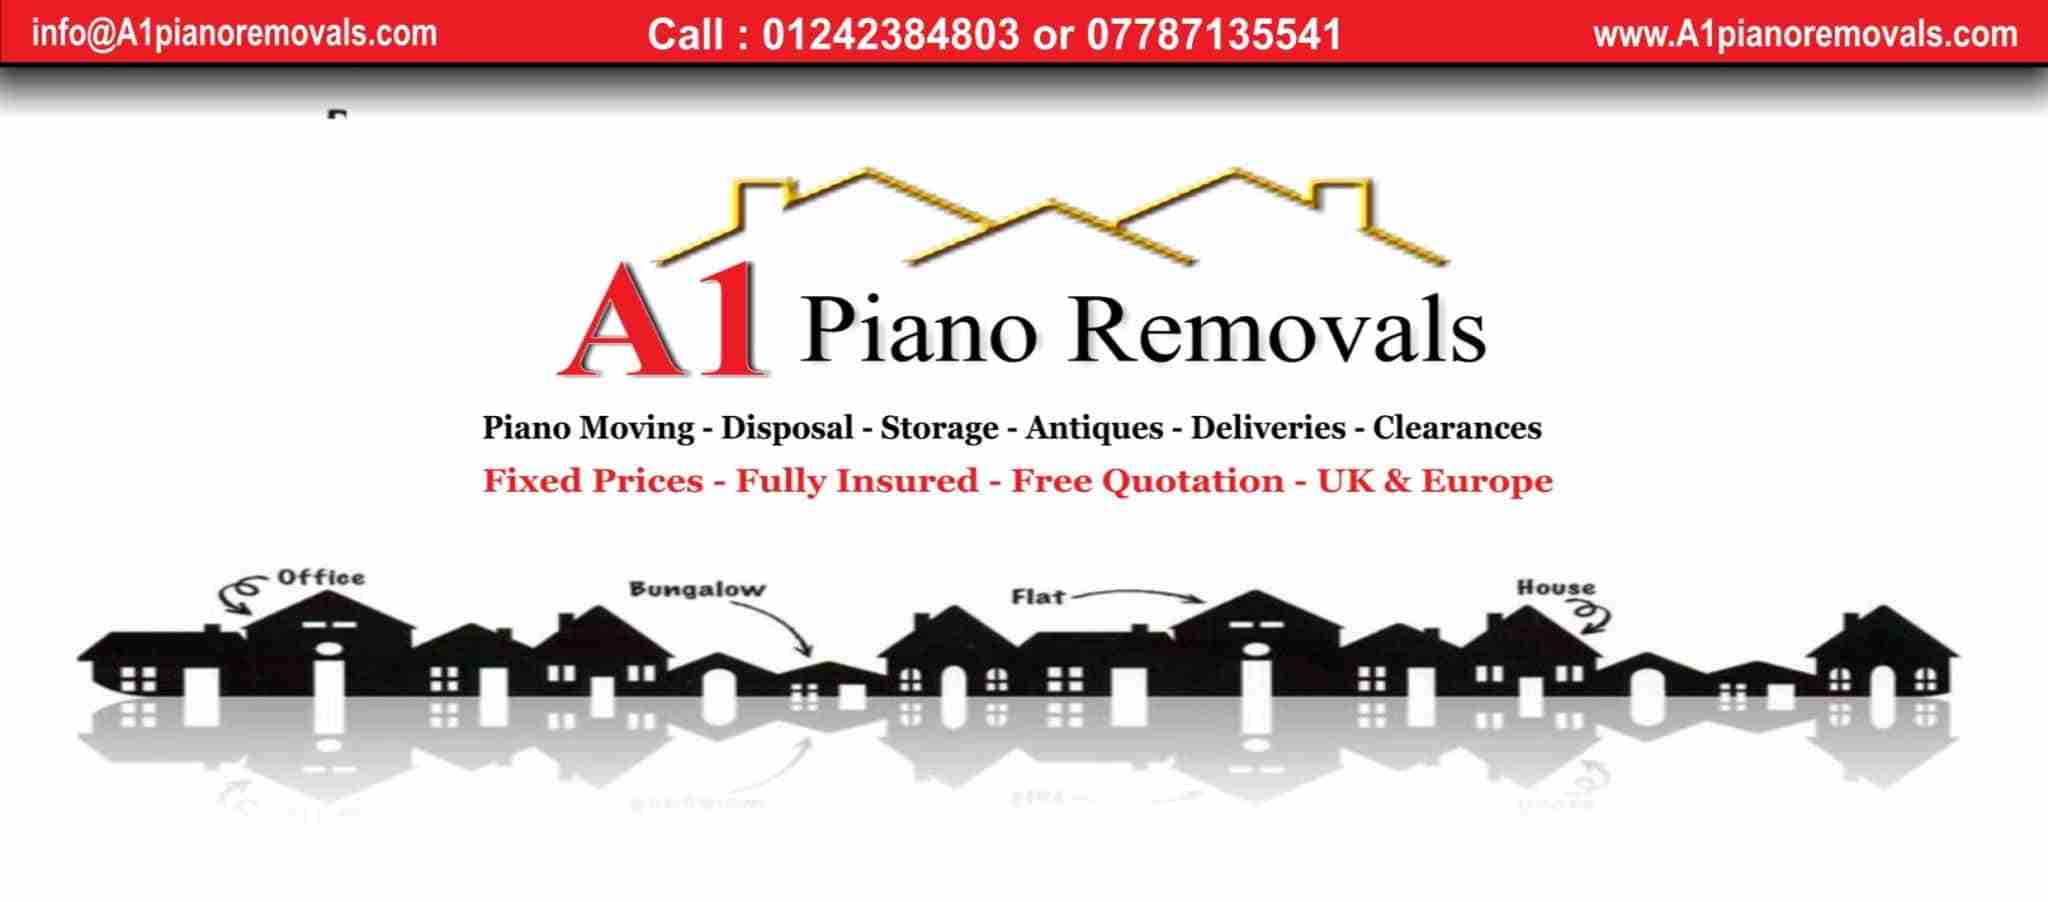 A1 Piano Removals